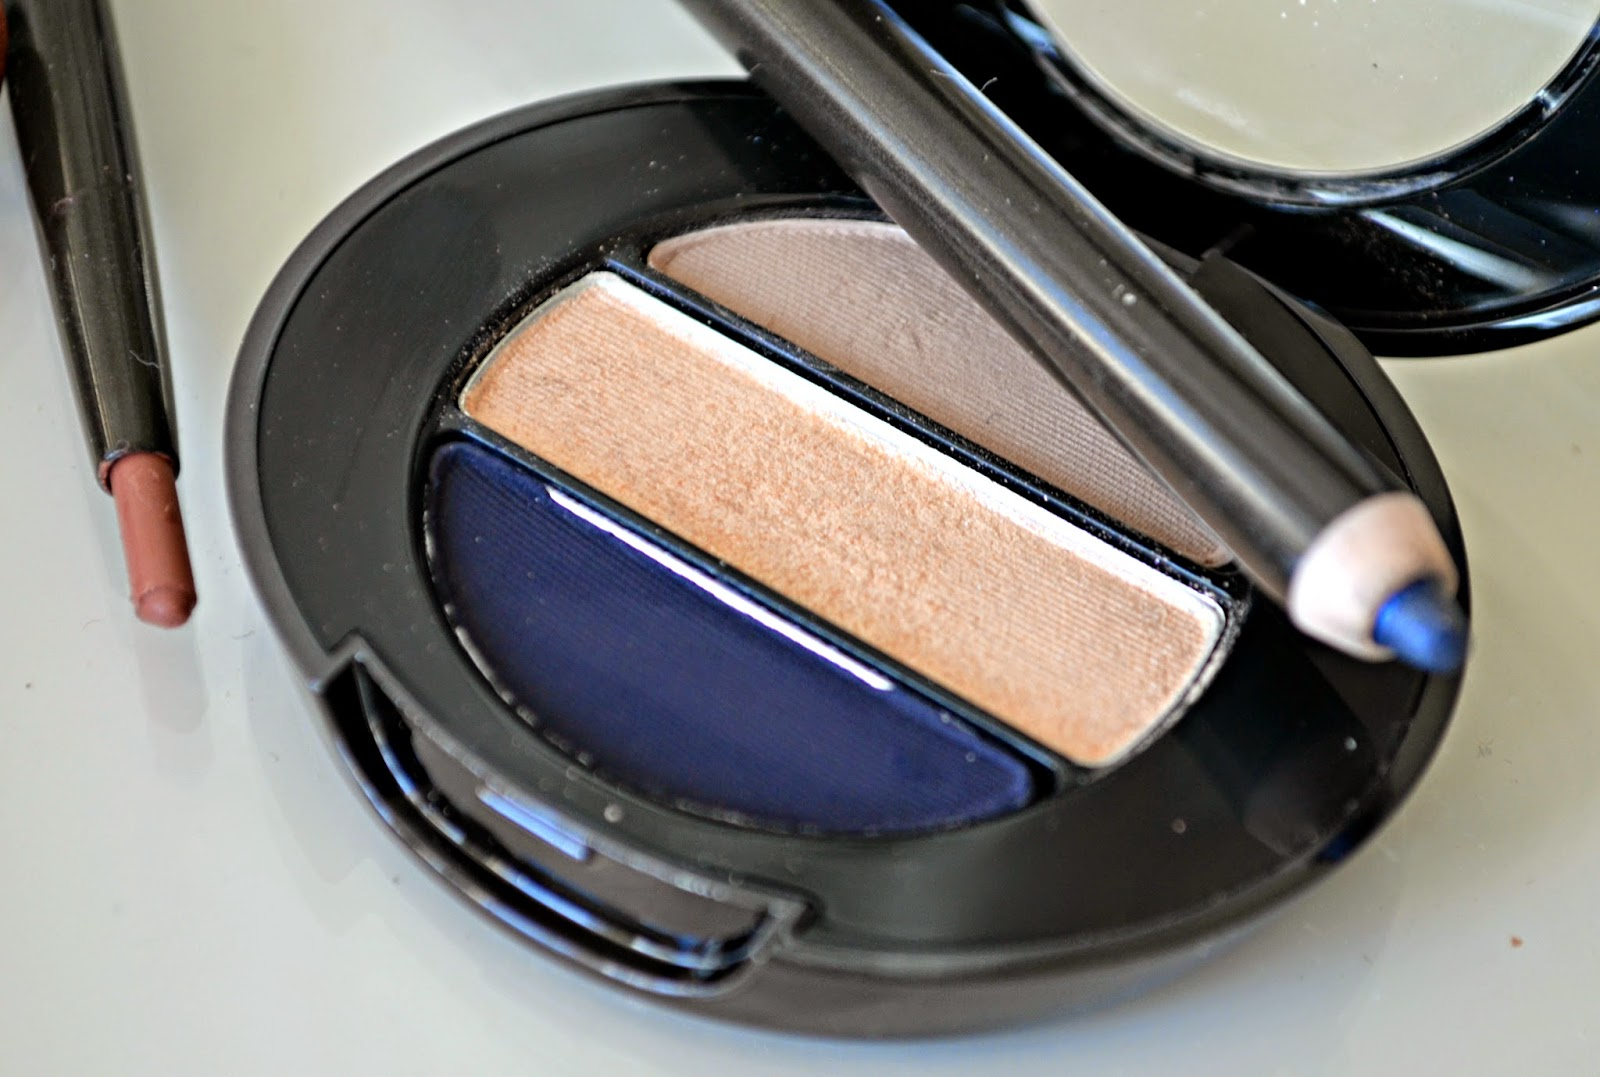 no 7 Stay Perfect Trio Eye Shadow Palette in In The Navy